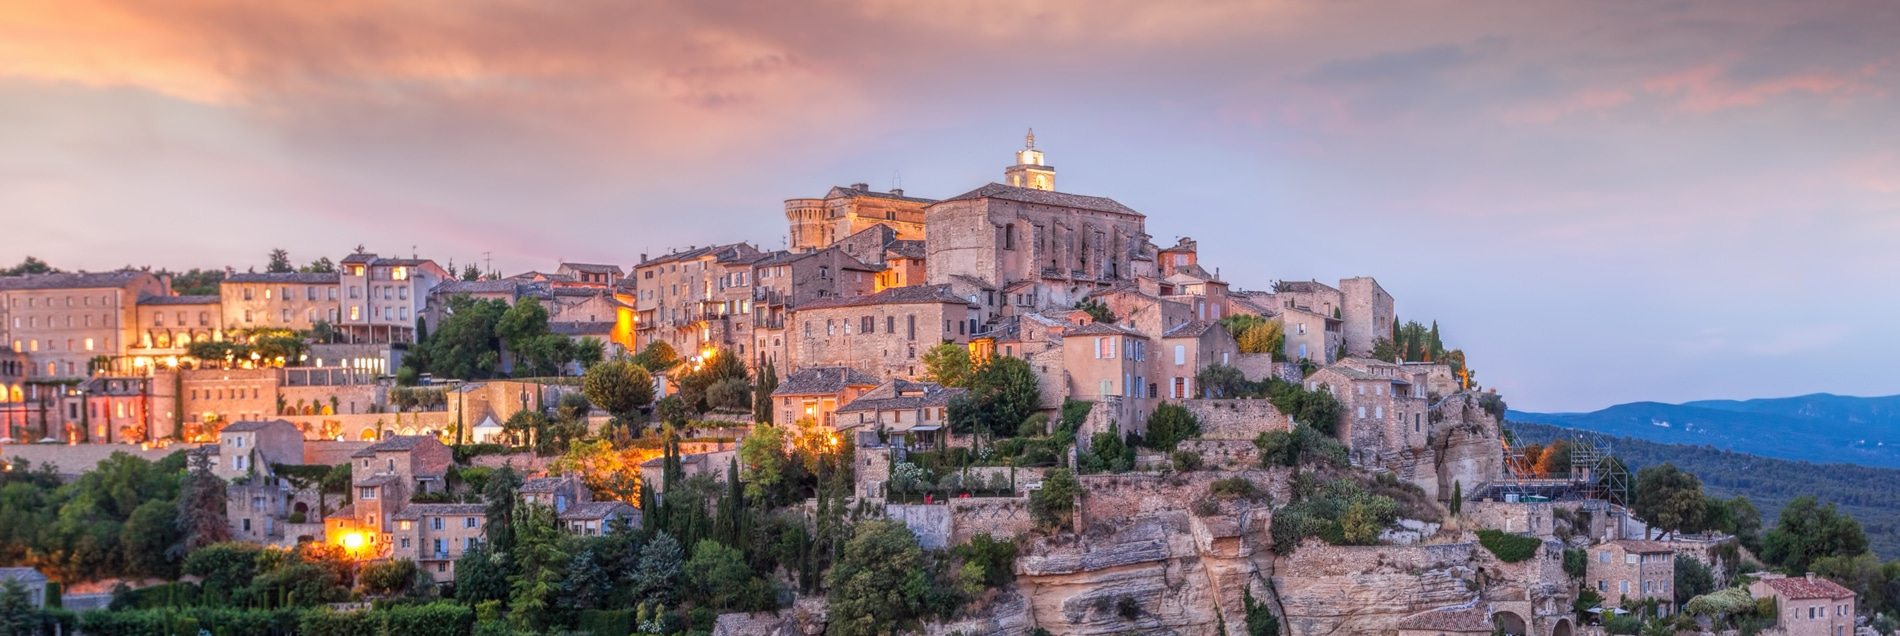 The most picturesque towns in Provence worth veering off the beaten track for